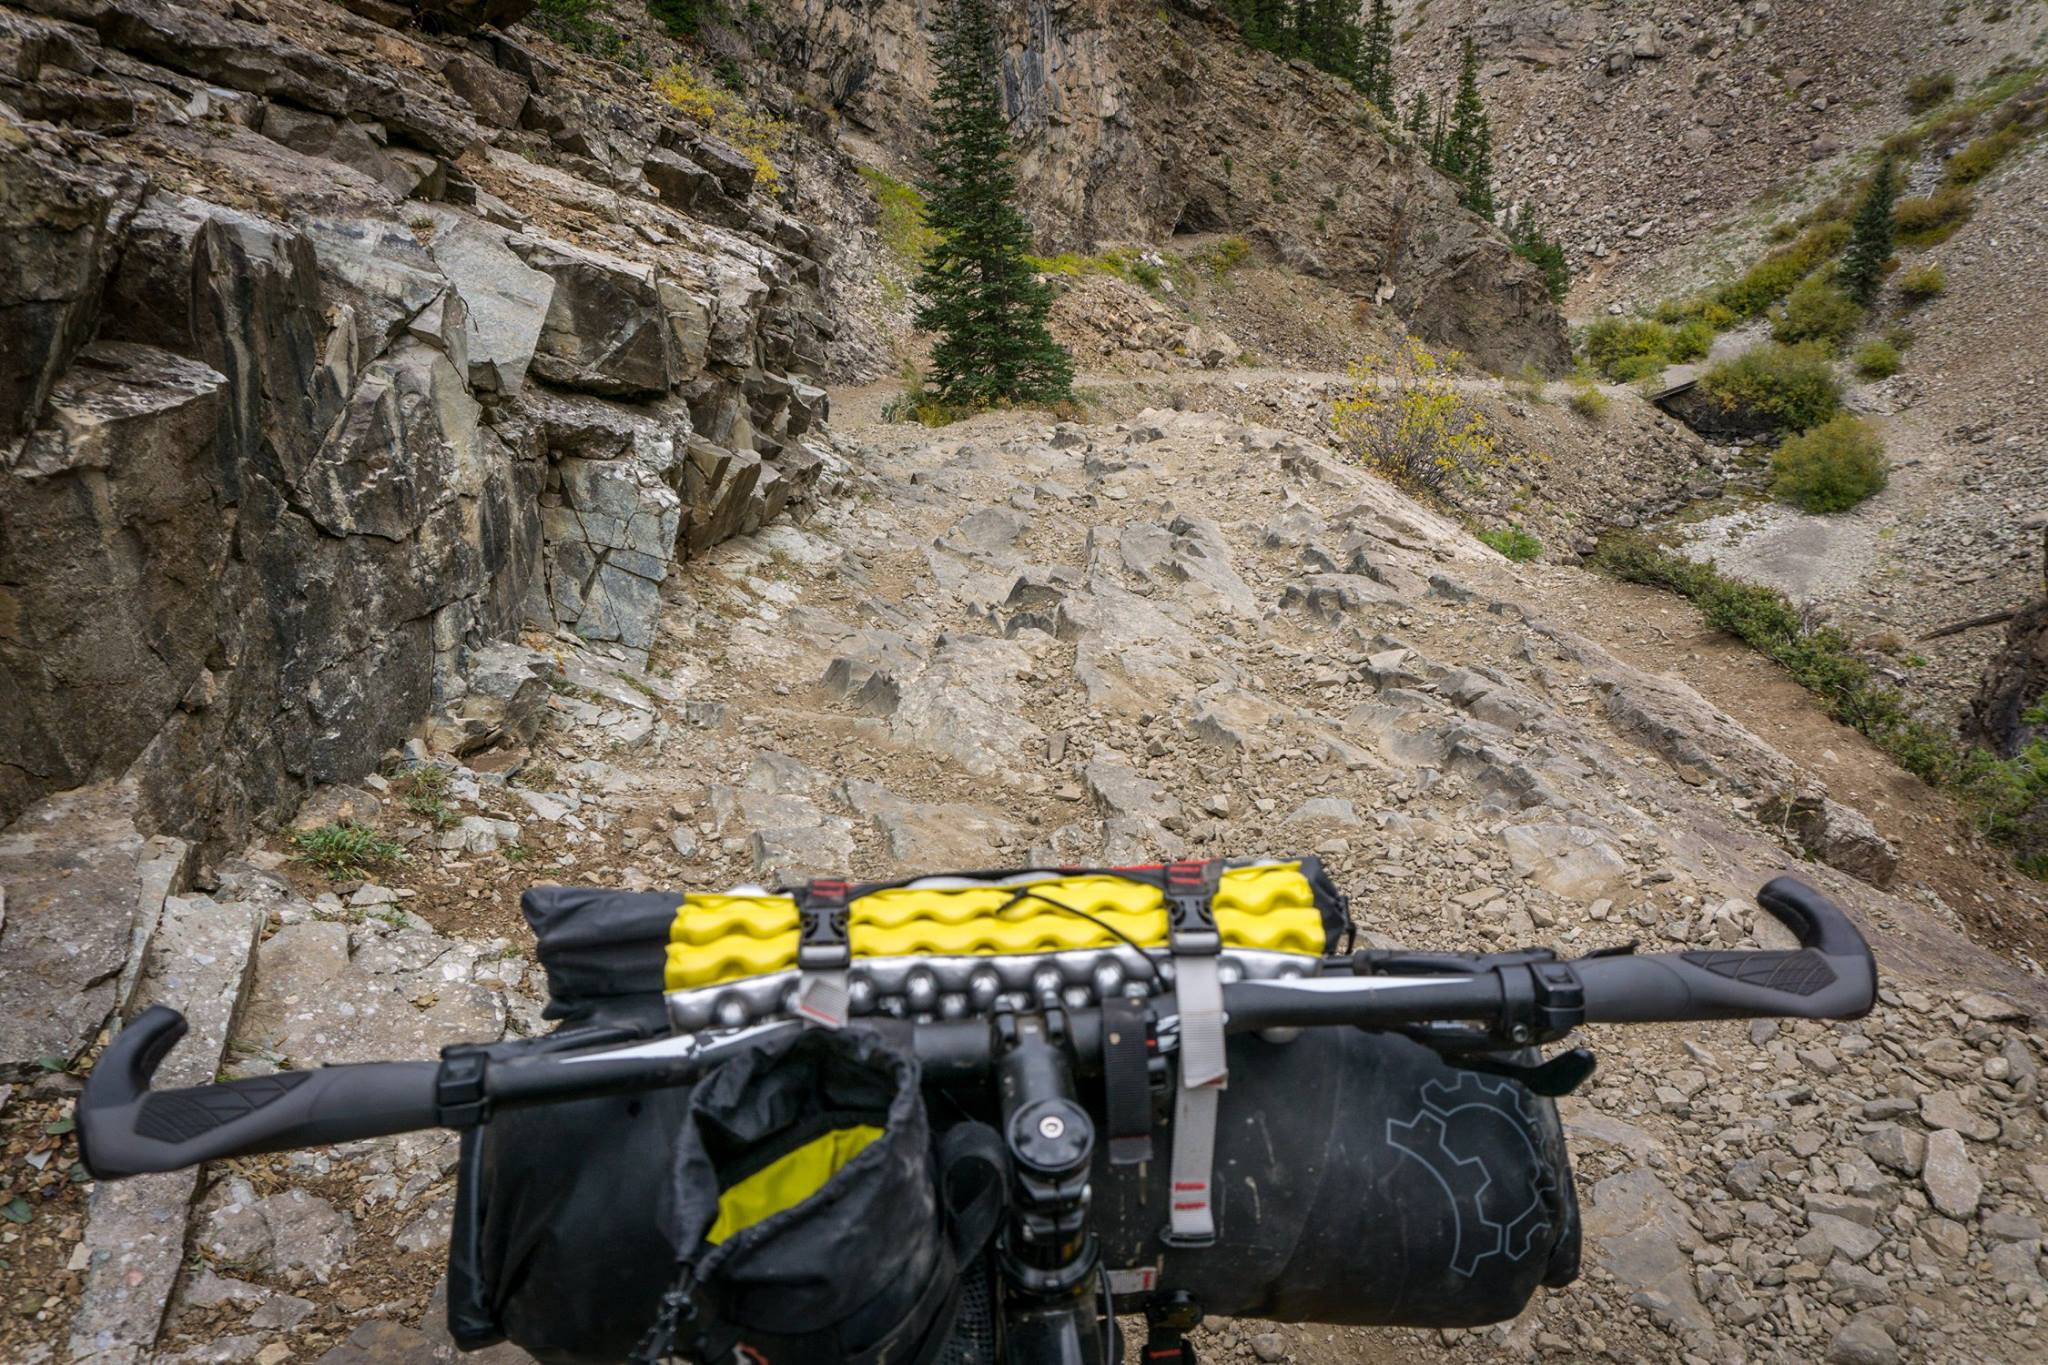 Simple cockpit before I got a fancy phone mount and wireless speaker. Headed down Schofield pass in Colorado. That foam dooohickey is a fold up seat, which I ended up using 0 times, but they come in hand during colder months to prevent freezing your butt off.